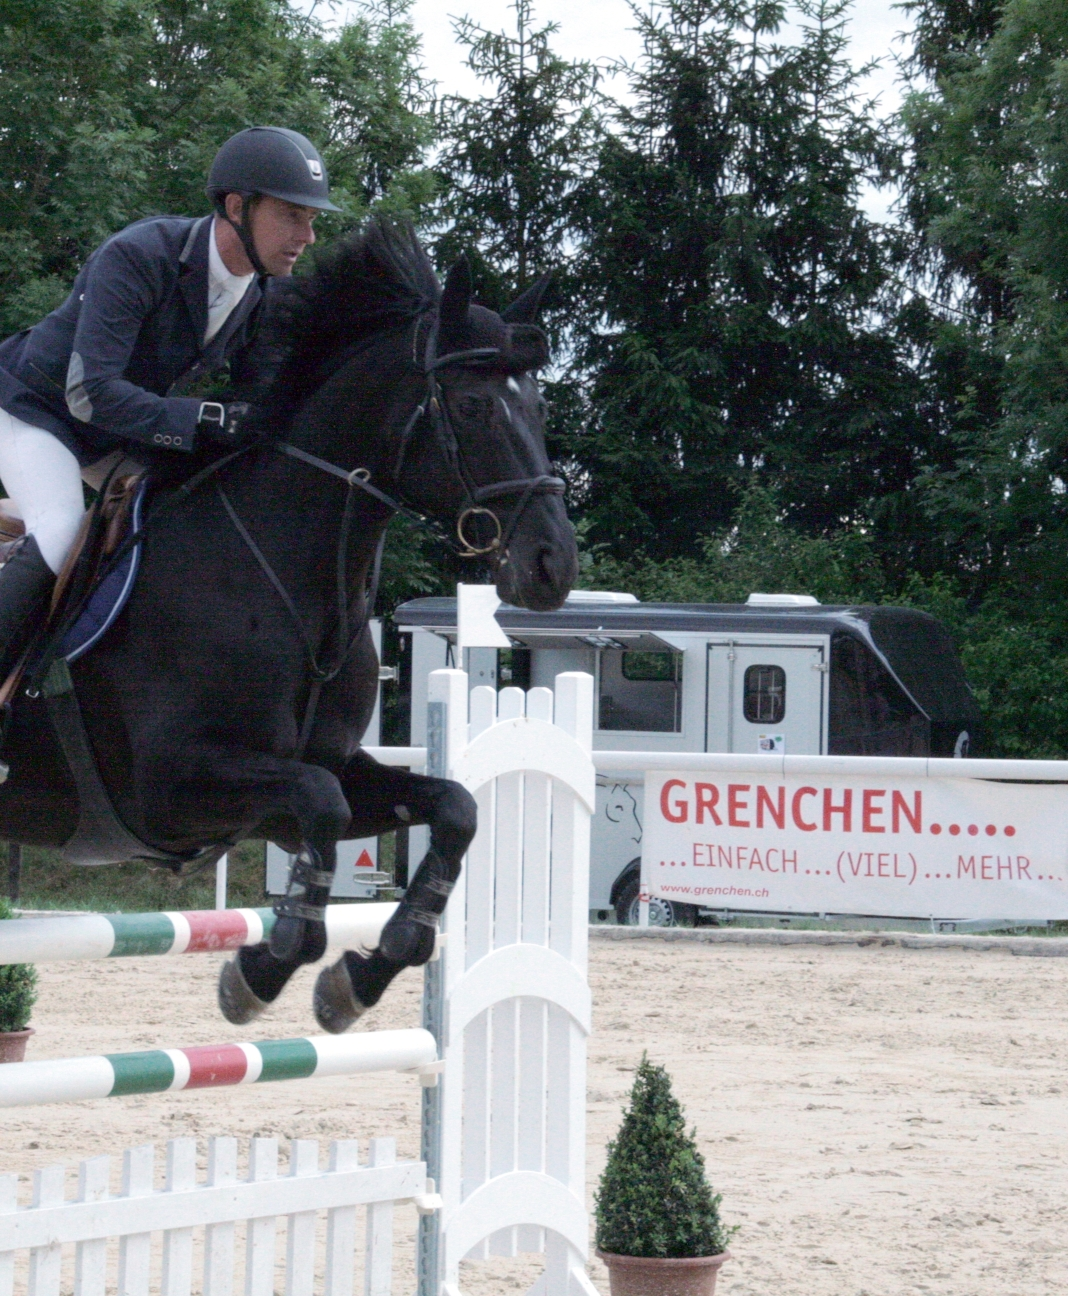 Concours Grenchen